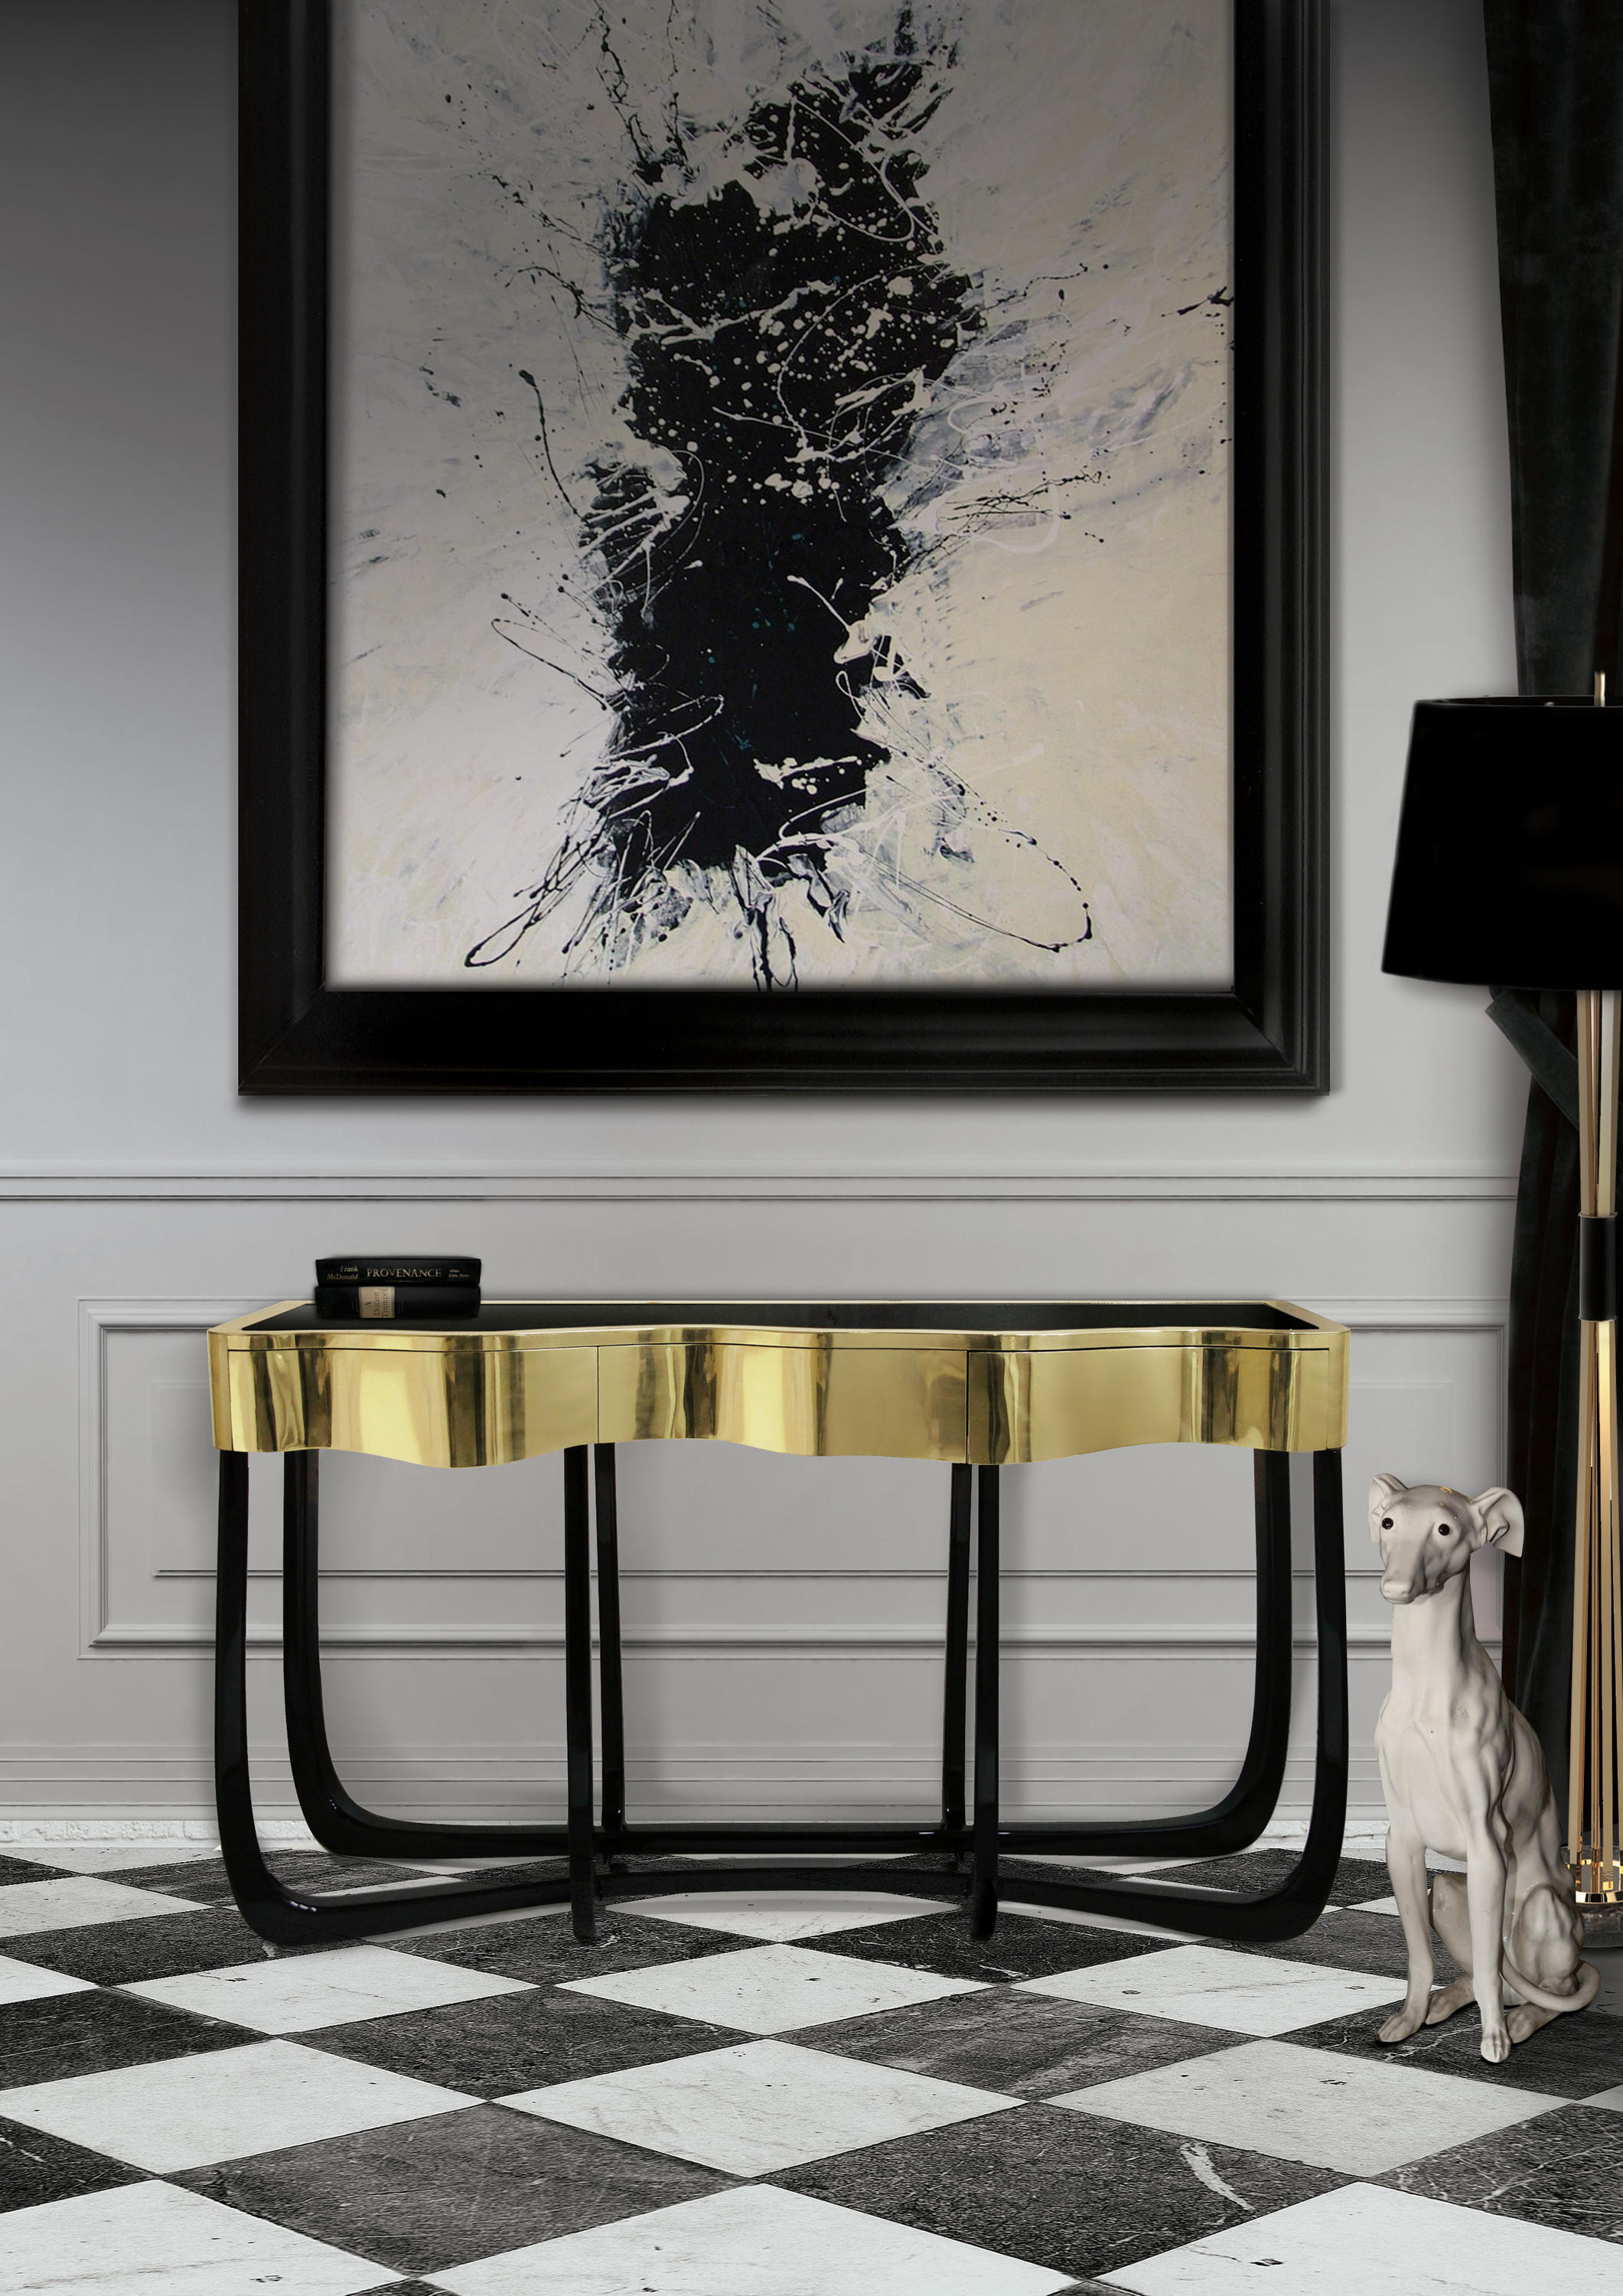 unique design Discover 10 Console Tables With A Daring Unique Design 3 Discover 10 Console Tables With A Daring Unique Design